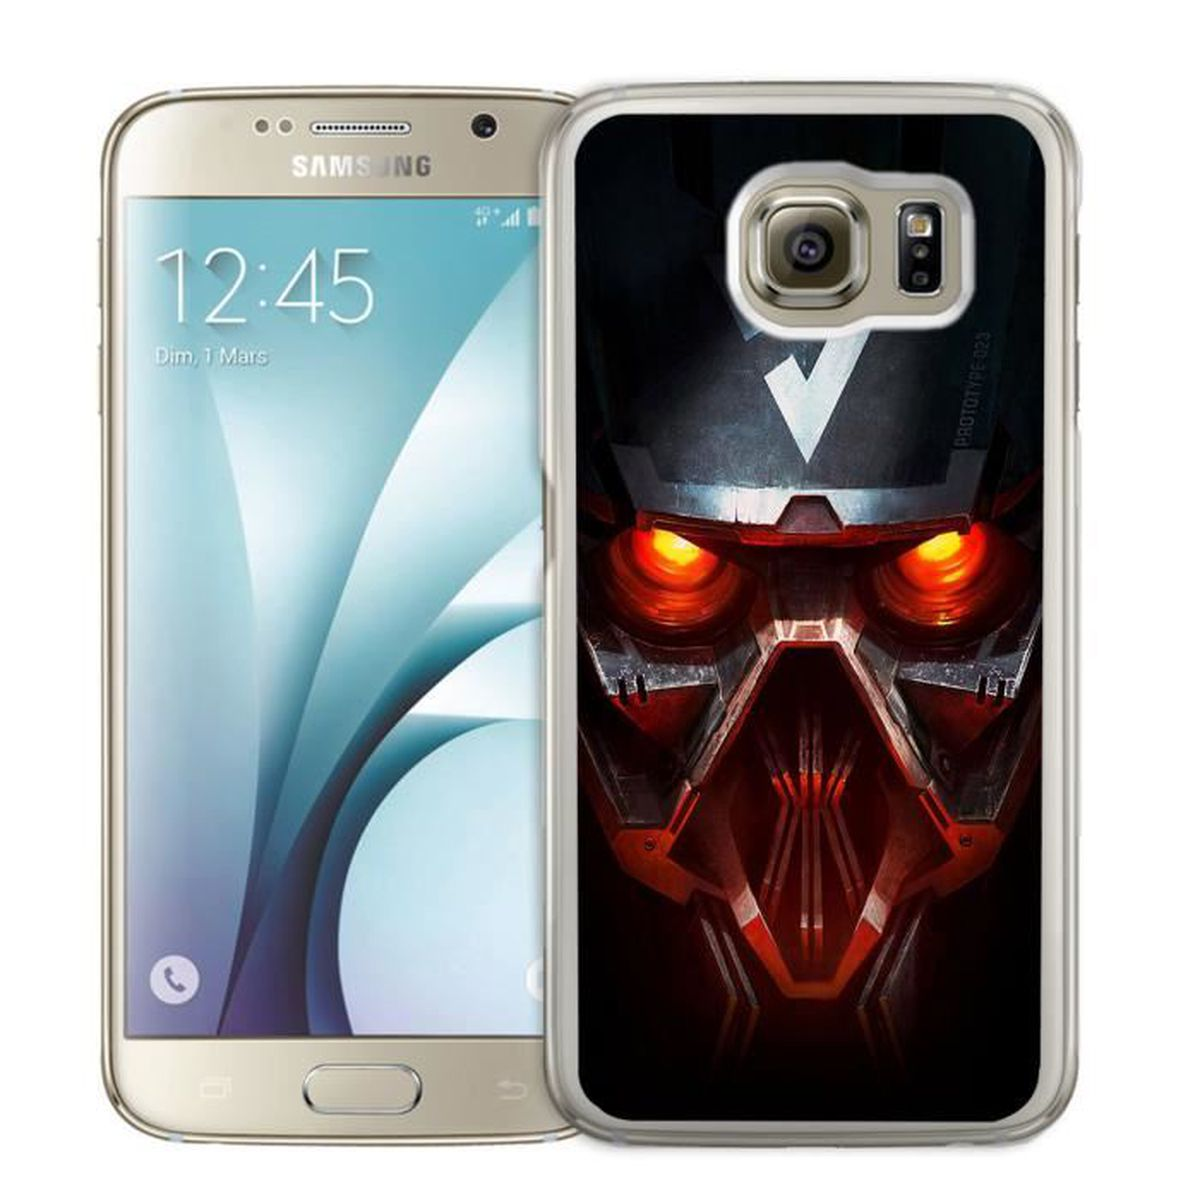 COQUE - BUMPER Coque Samsung Galaxy S6 Edge : Killzone Hellghast